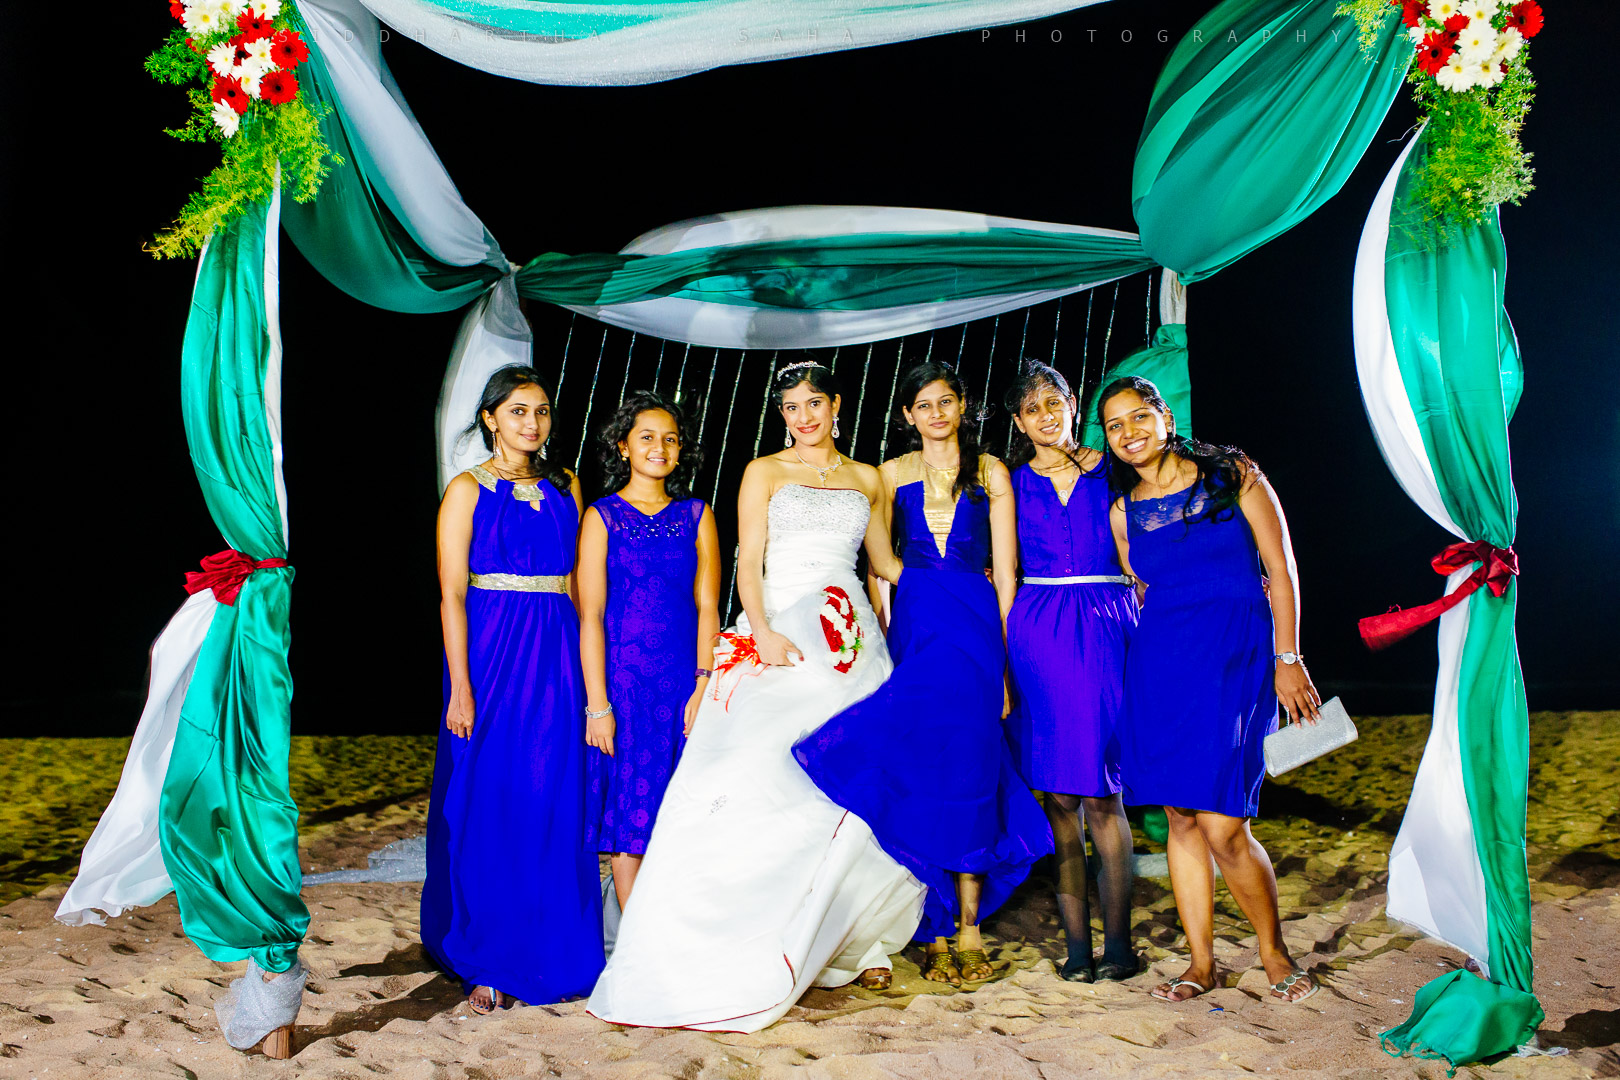 2015-05-24 - Chavi Jerry Wedding - 37 - _P1A1380